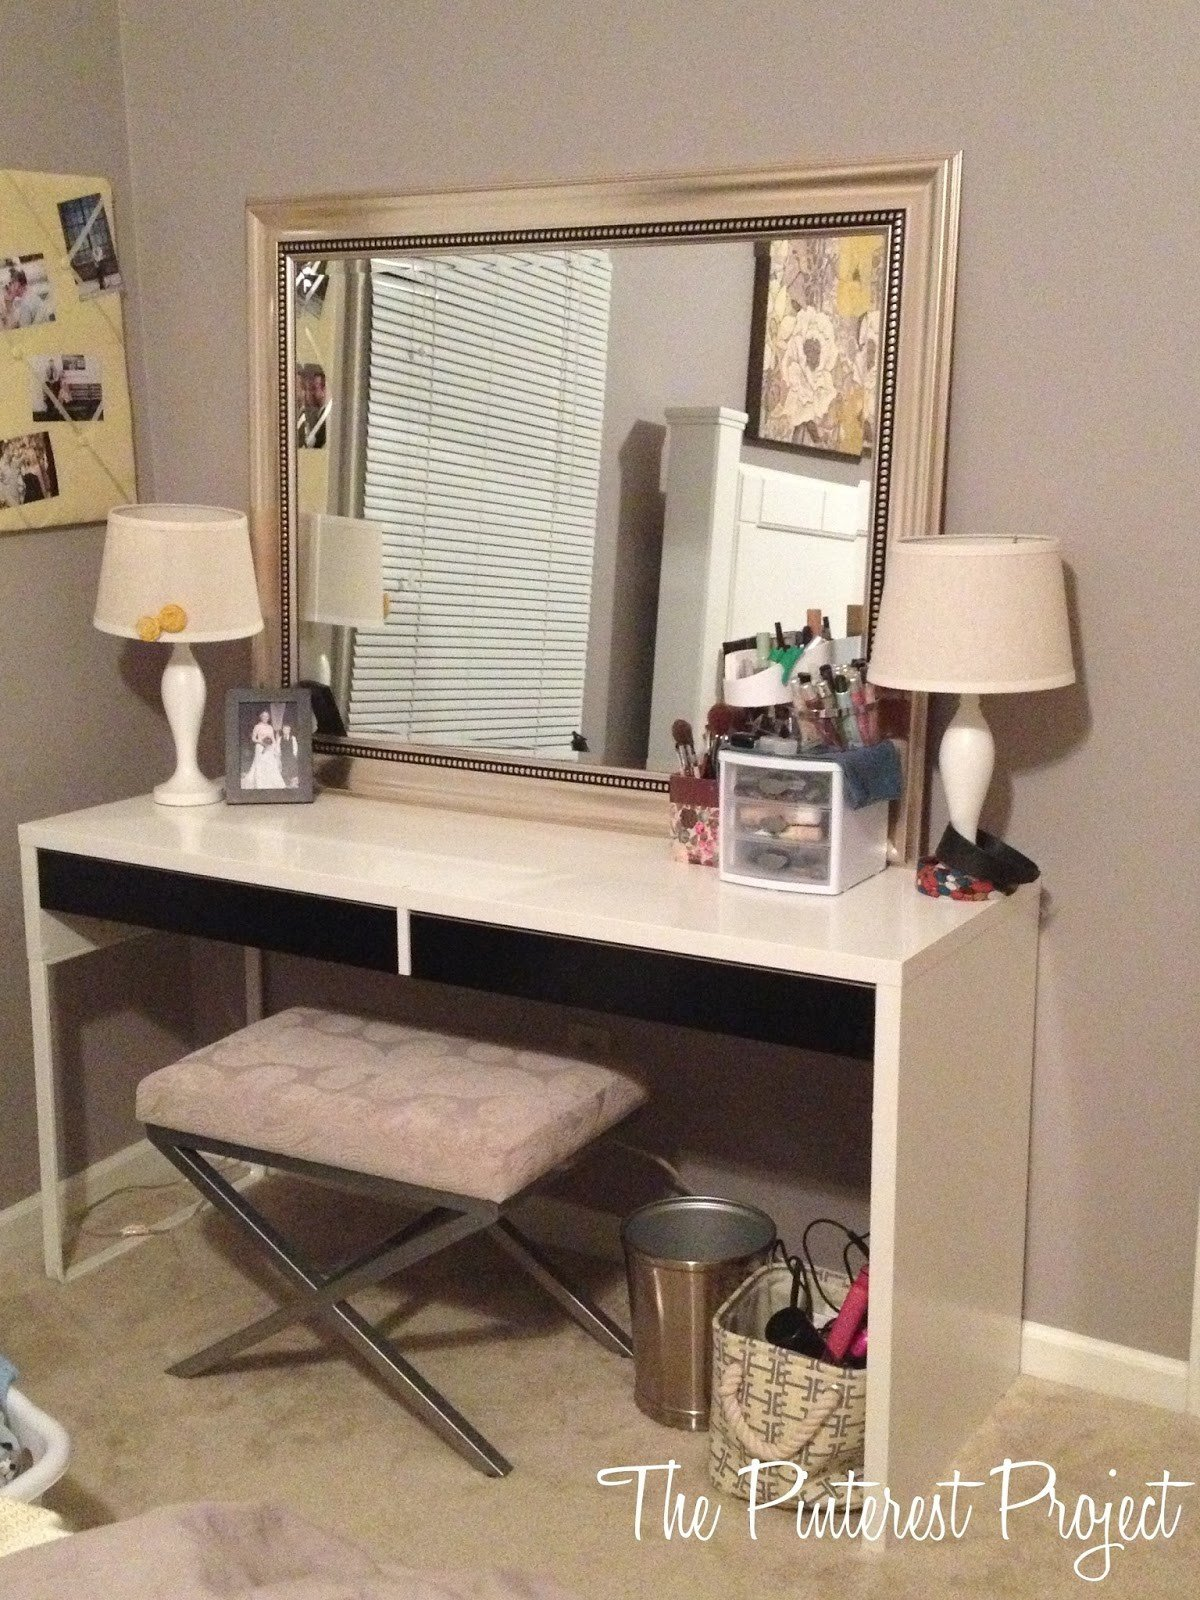 Best Ikea Hack Desk Into Vanity The Pinterest Project With Pictures